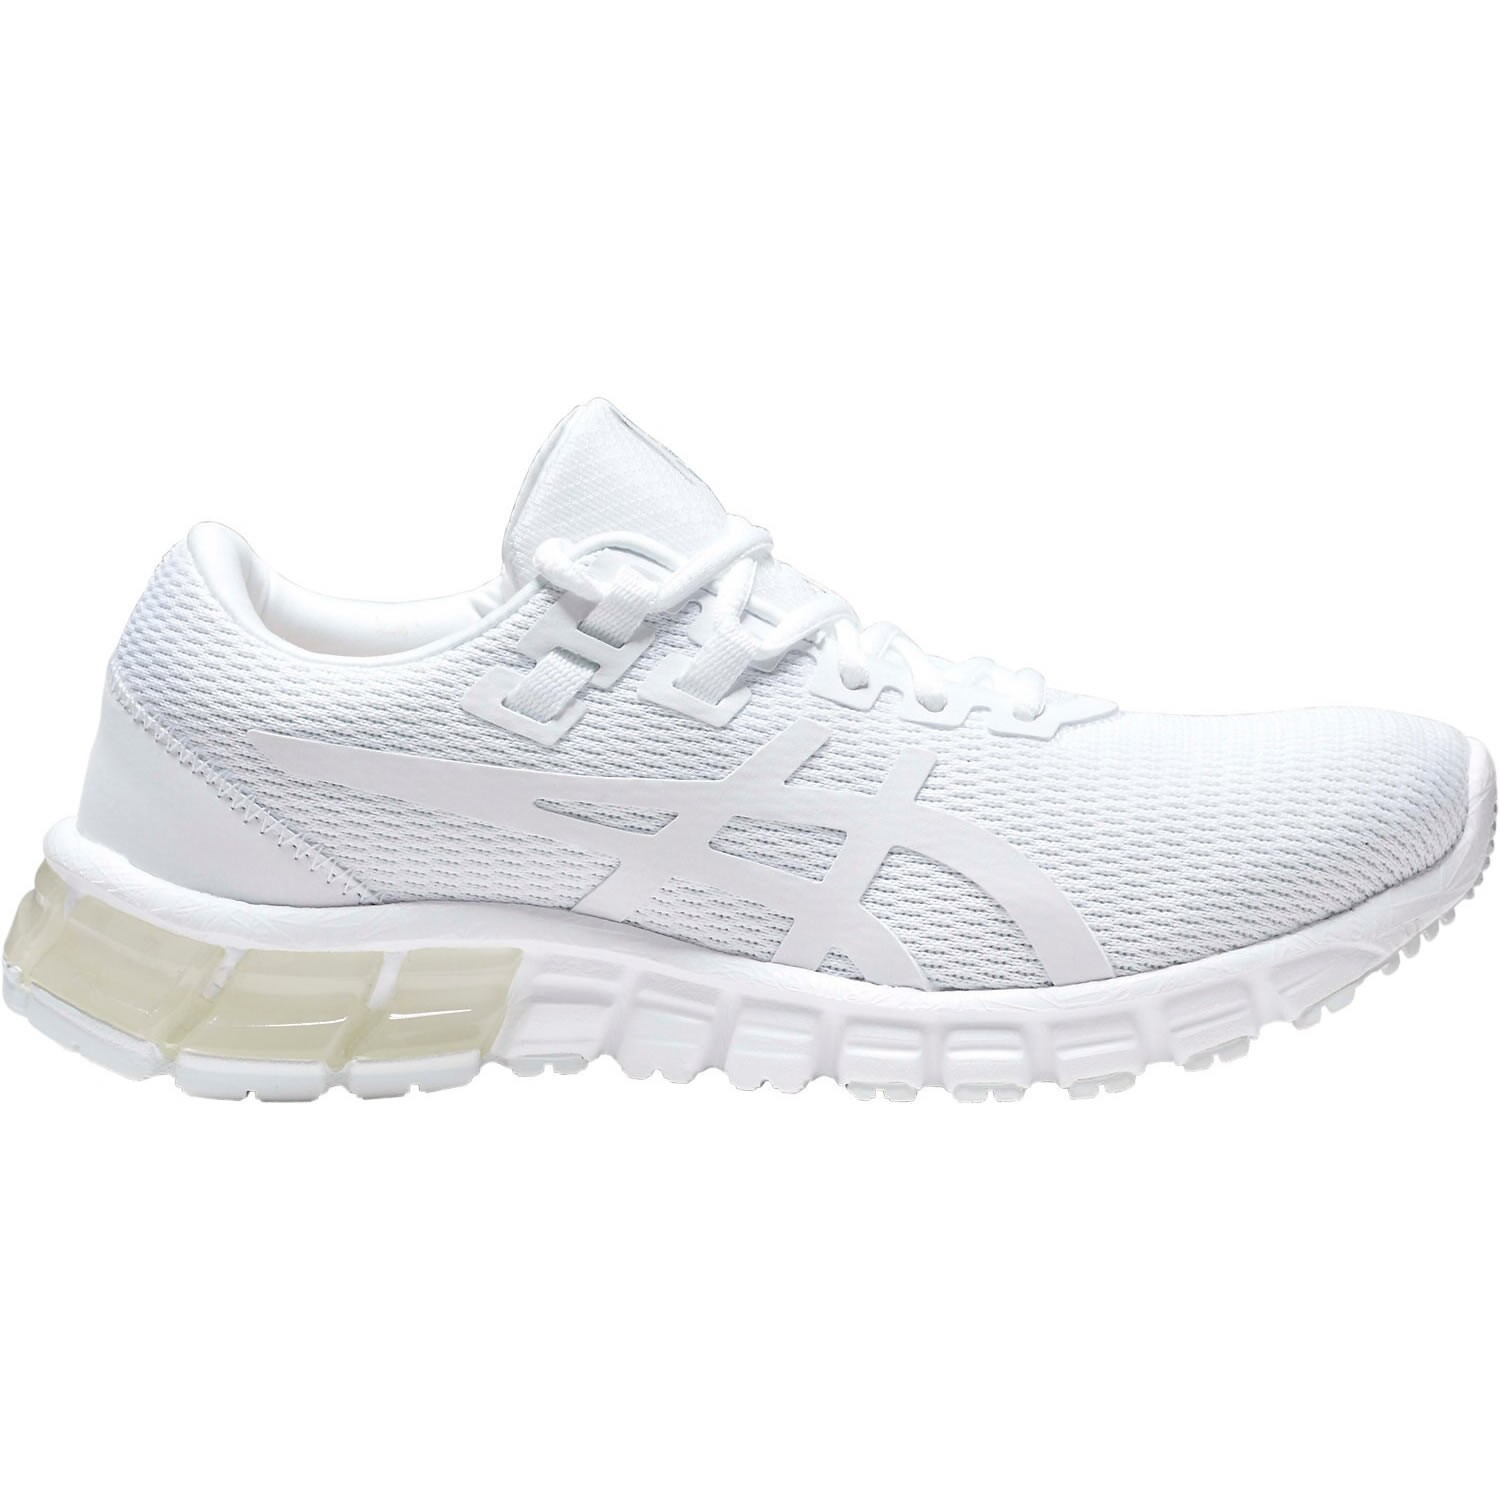 60b789c1819cc8 Asics Gel Quantum 90 - Womens Training Shoes - Triple White | Sportitude